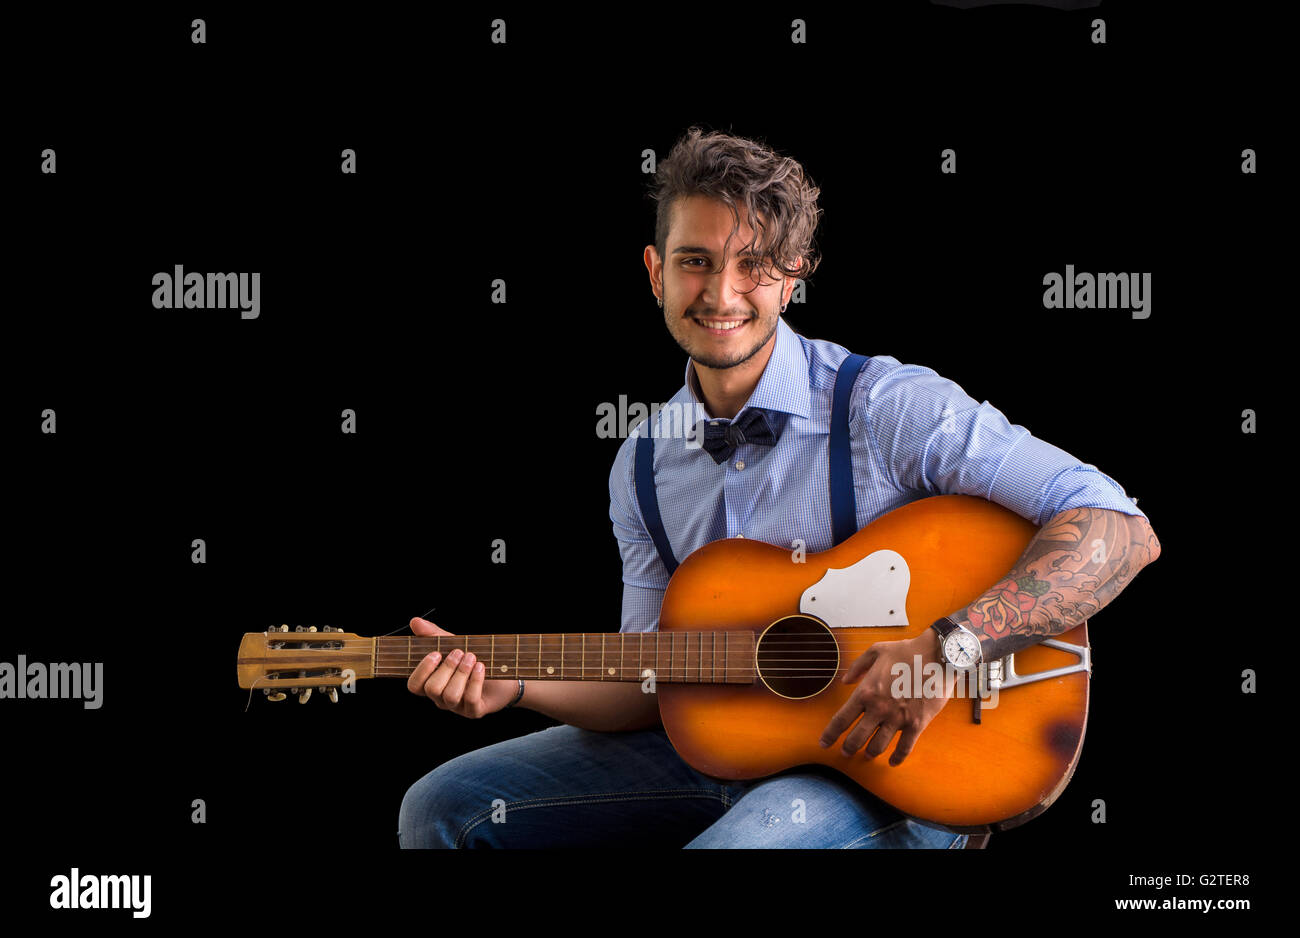 Handsome young man in bow-tie with guitar looking at camera.Studio shot. - Stock Image